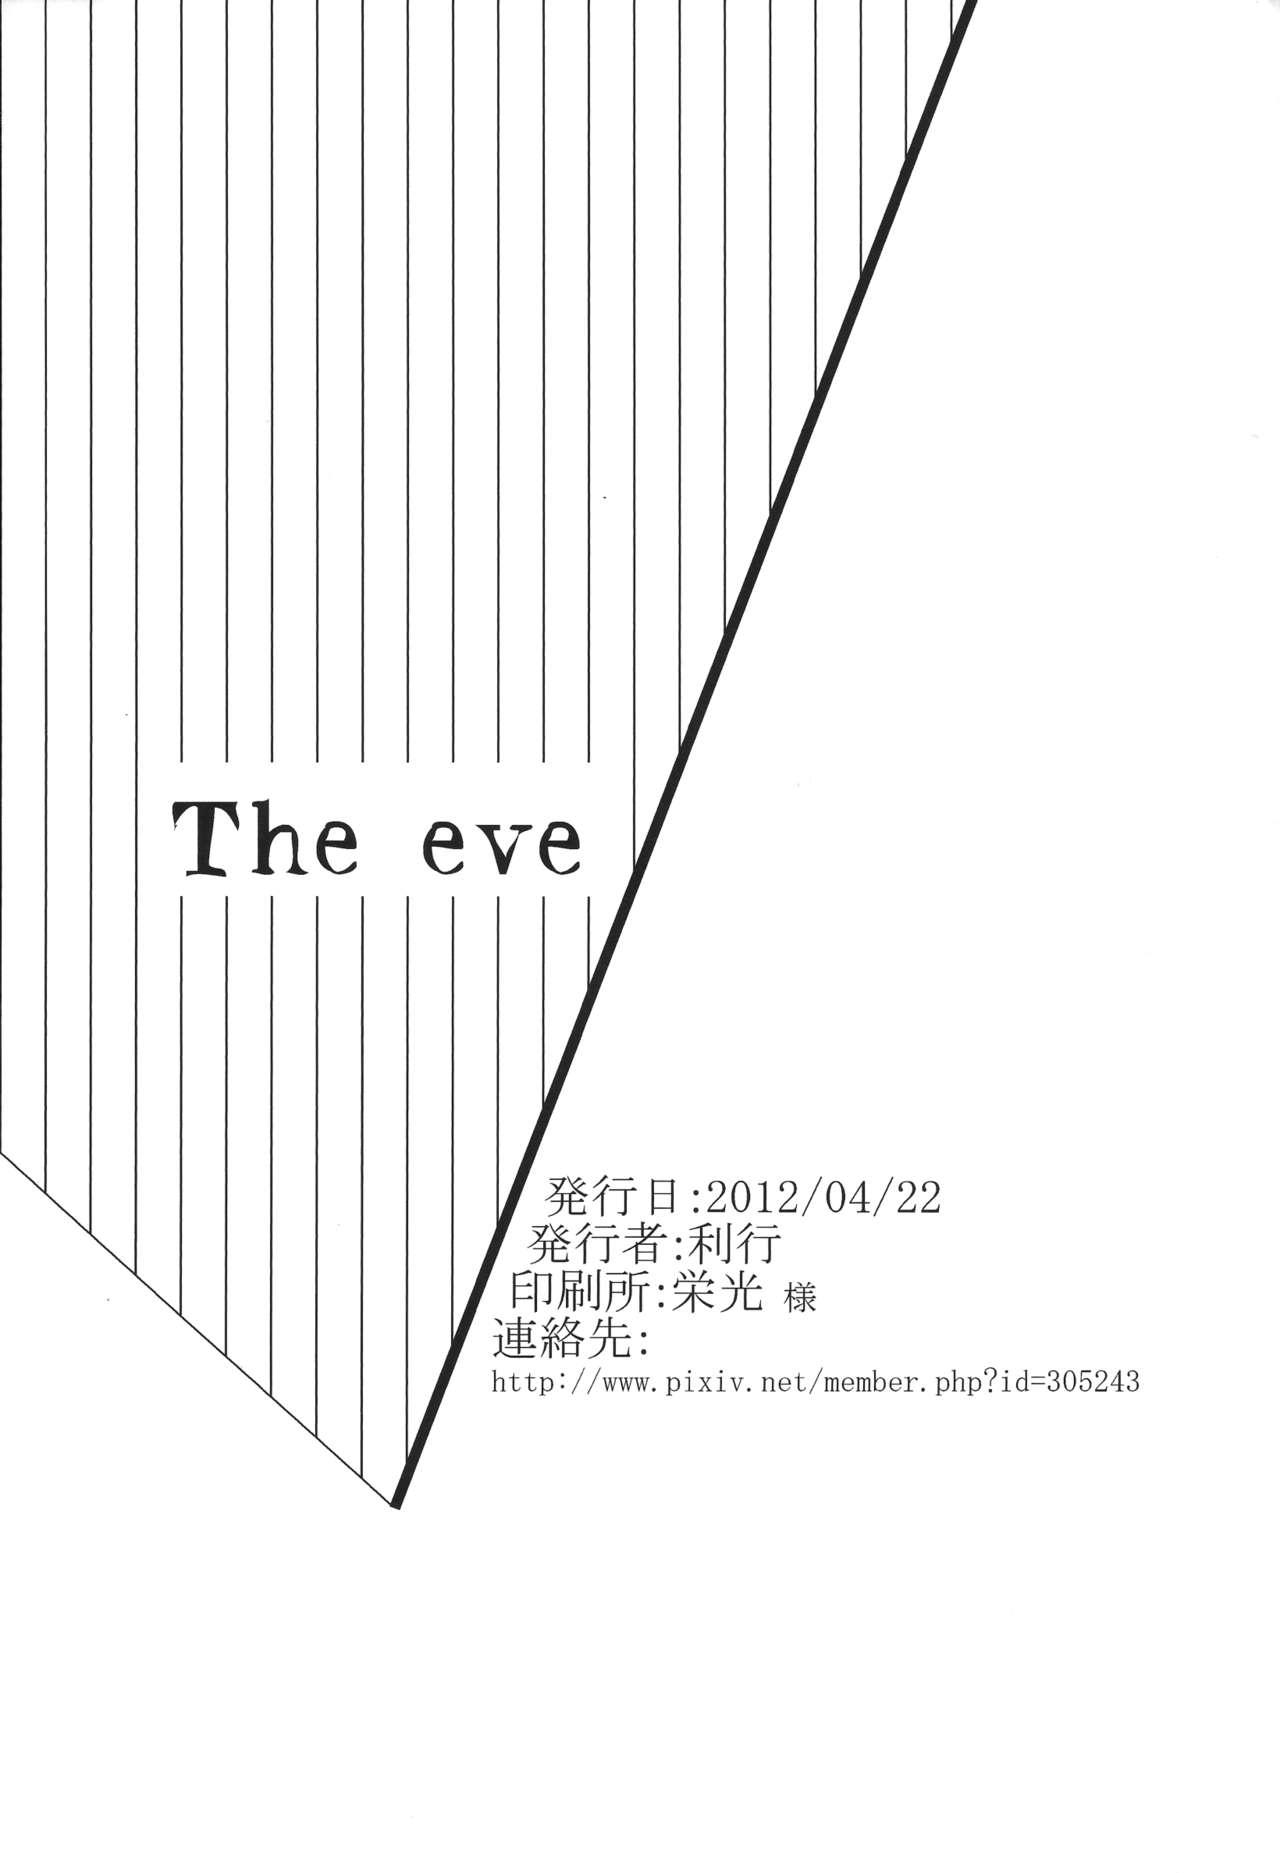 The eve 24